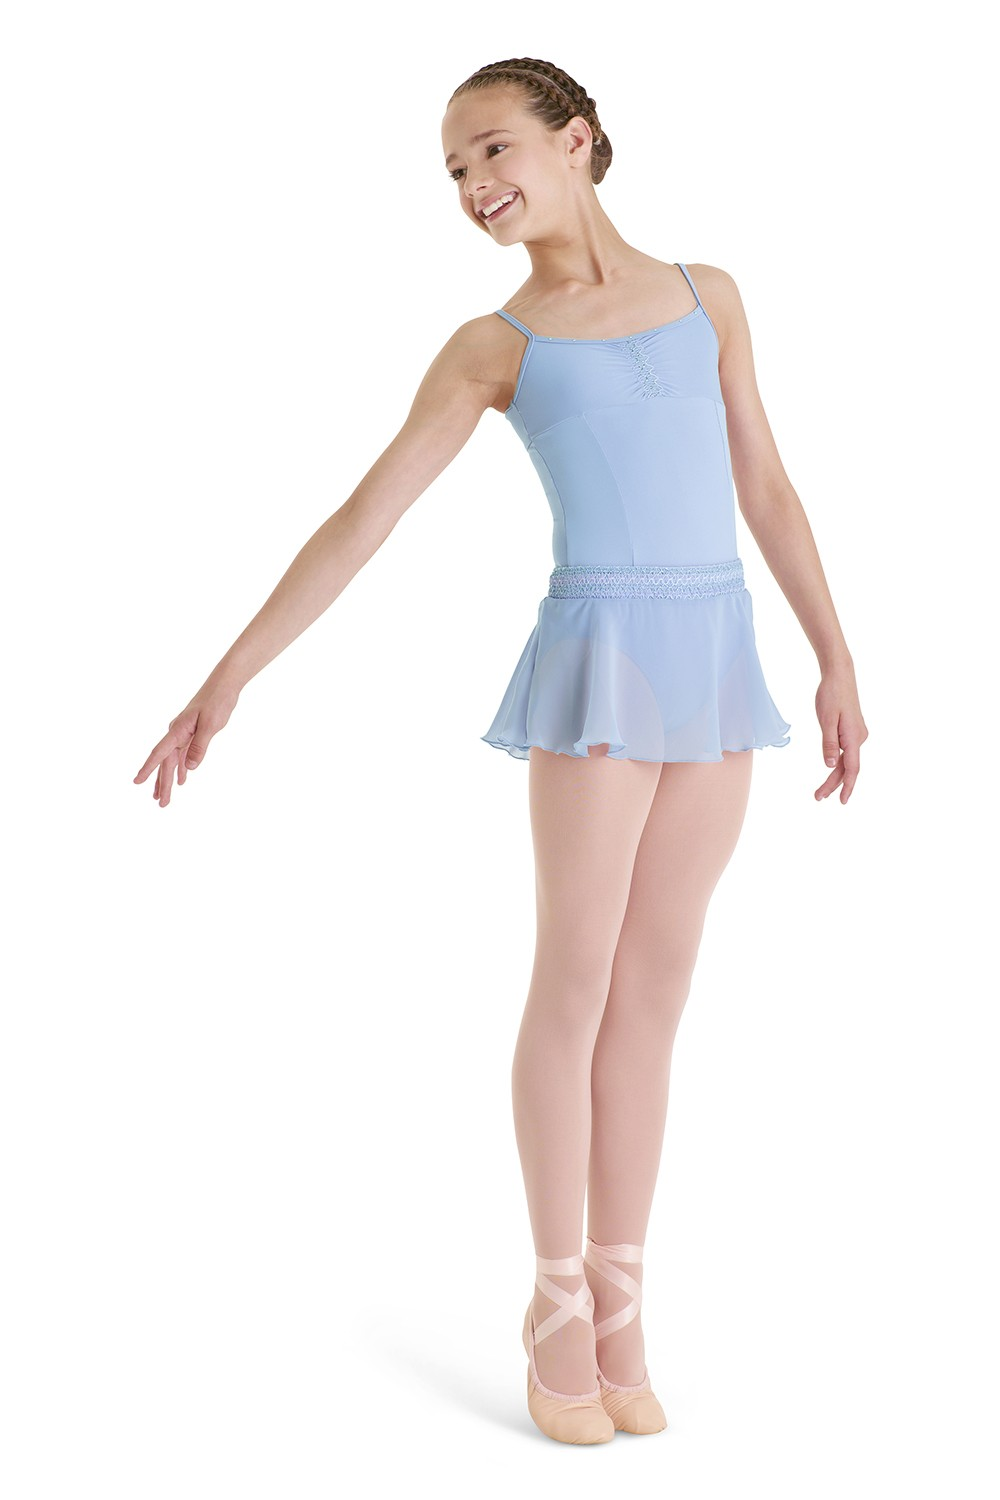 Girls Camisole Leotard Children's Dance Leotards